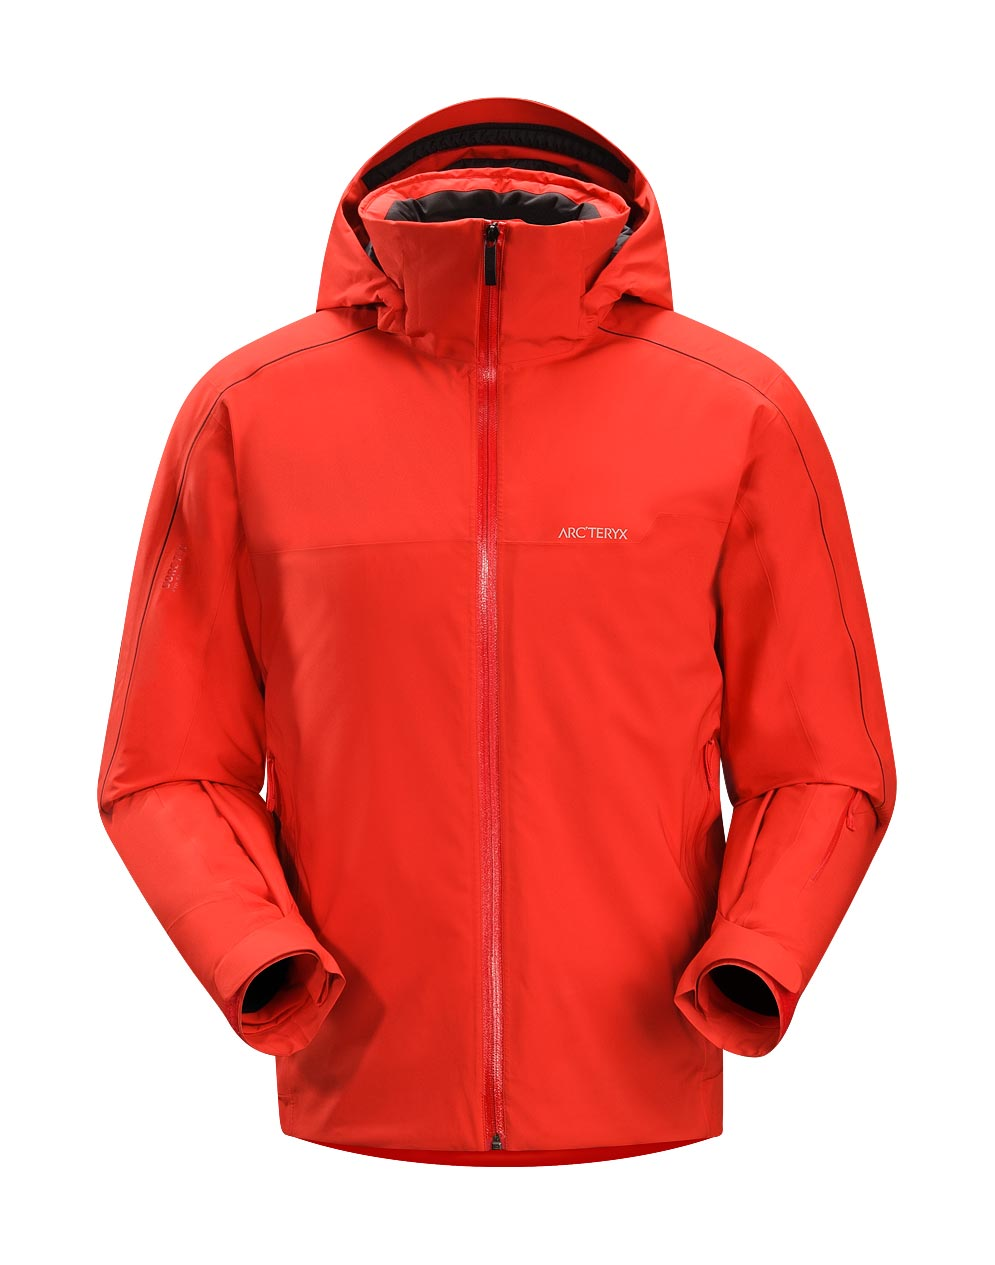 Arcteryx Jackets Men Cardinal Ventii Jacket